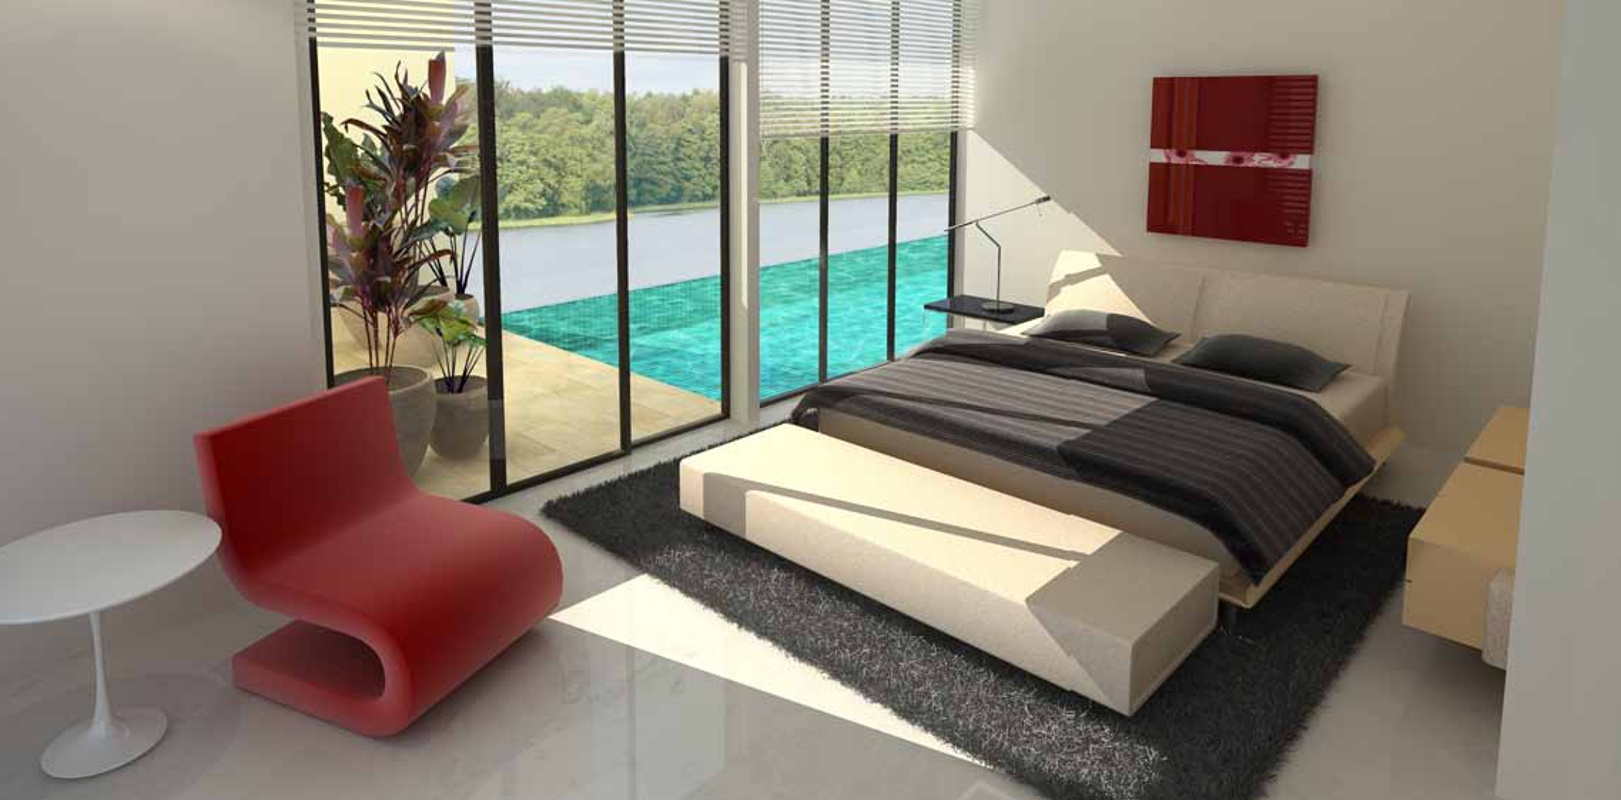 1792 Sq Ft 3 BHK 3T Apartment For Sale In Aliens Space Station